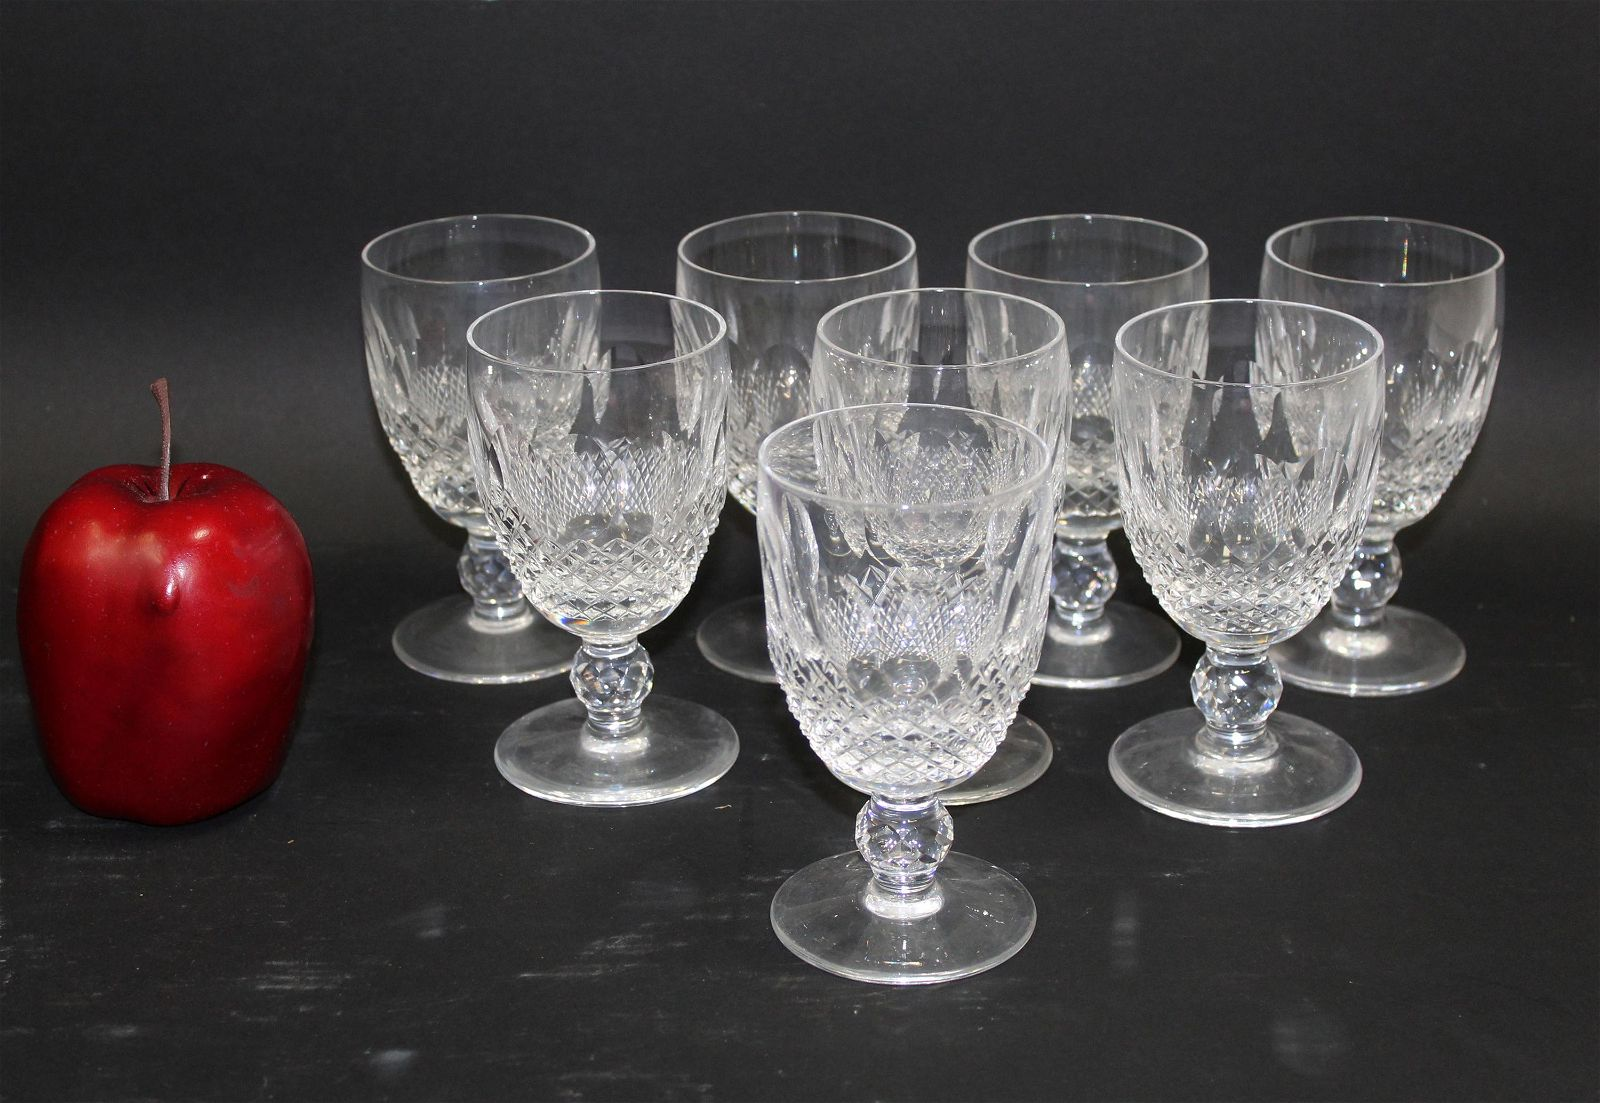 Set of 6 Waterford Colleen short stem sherry glasses